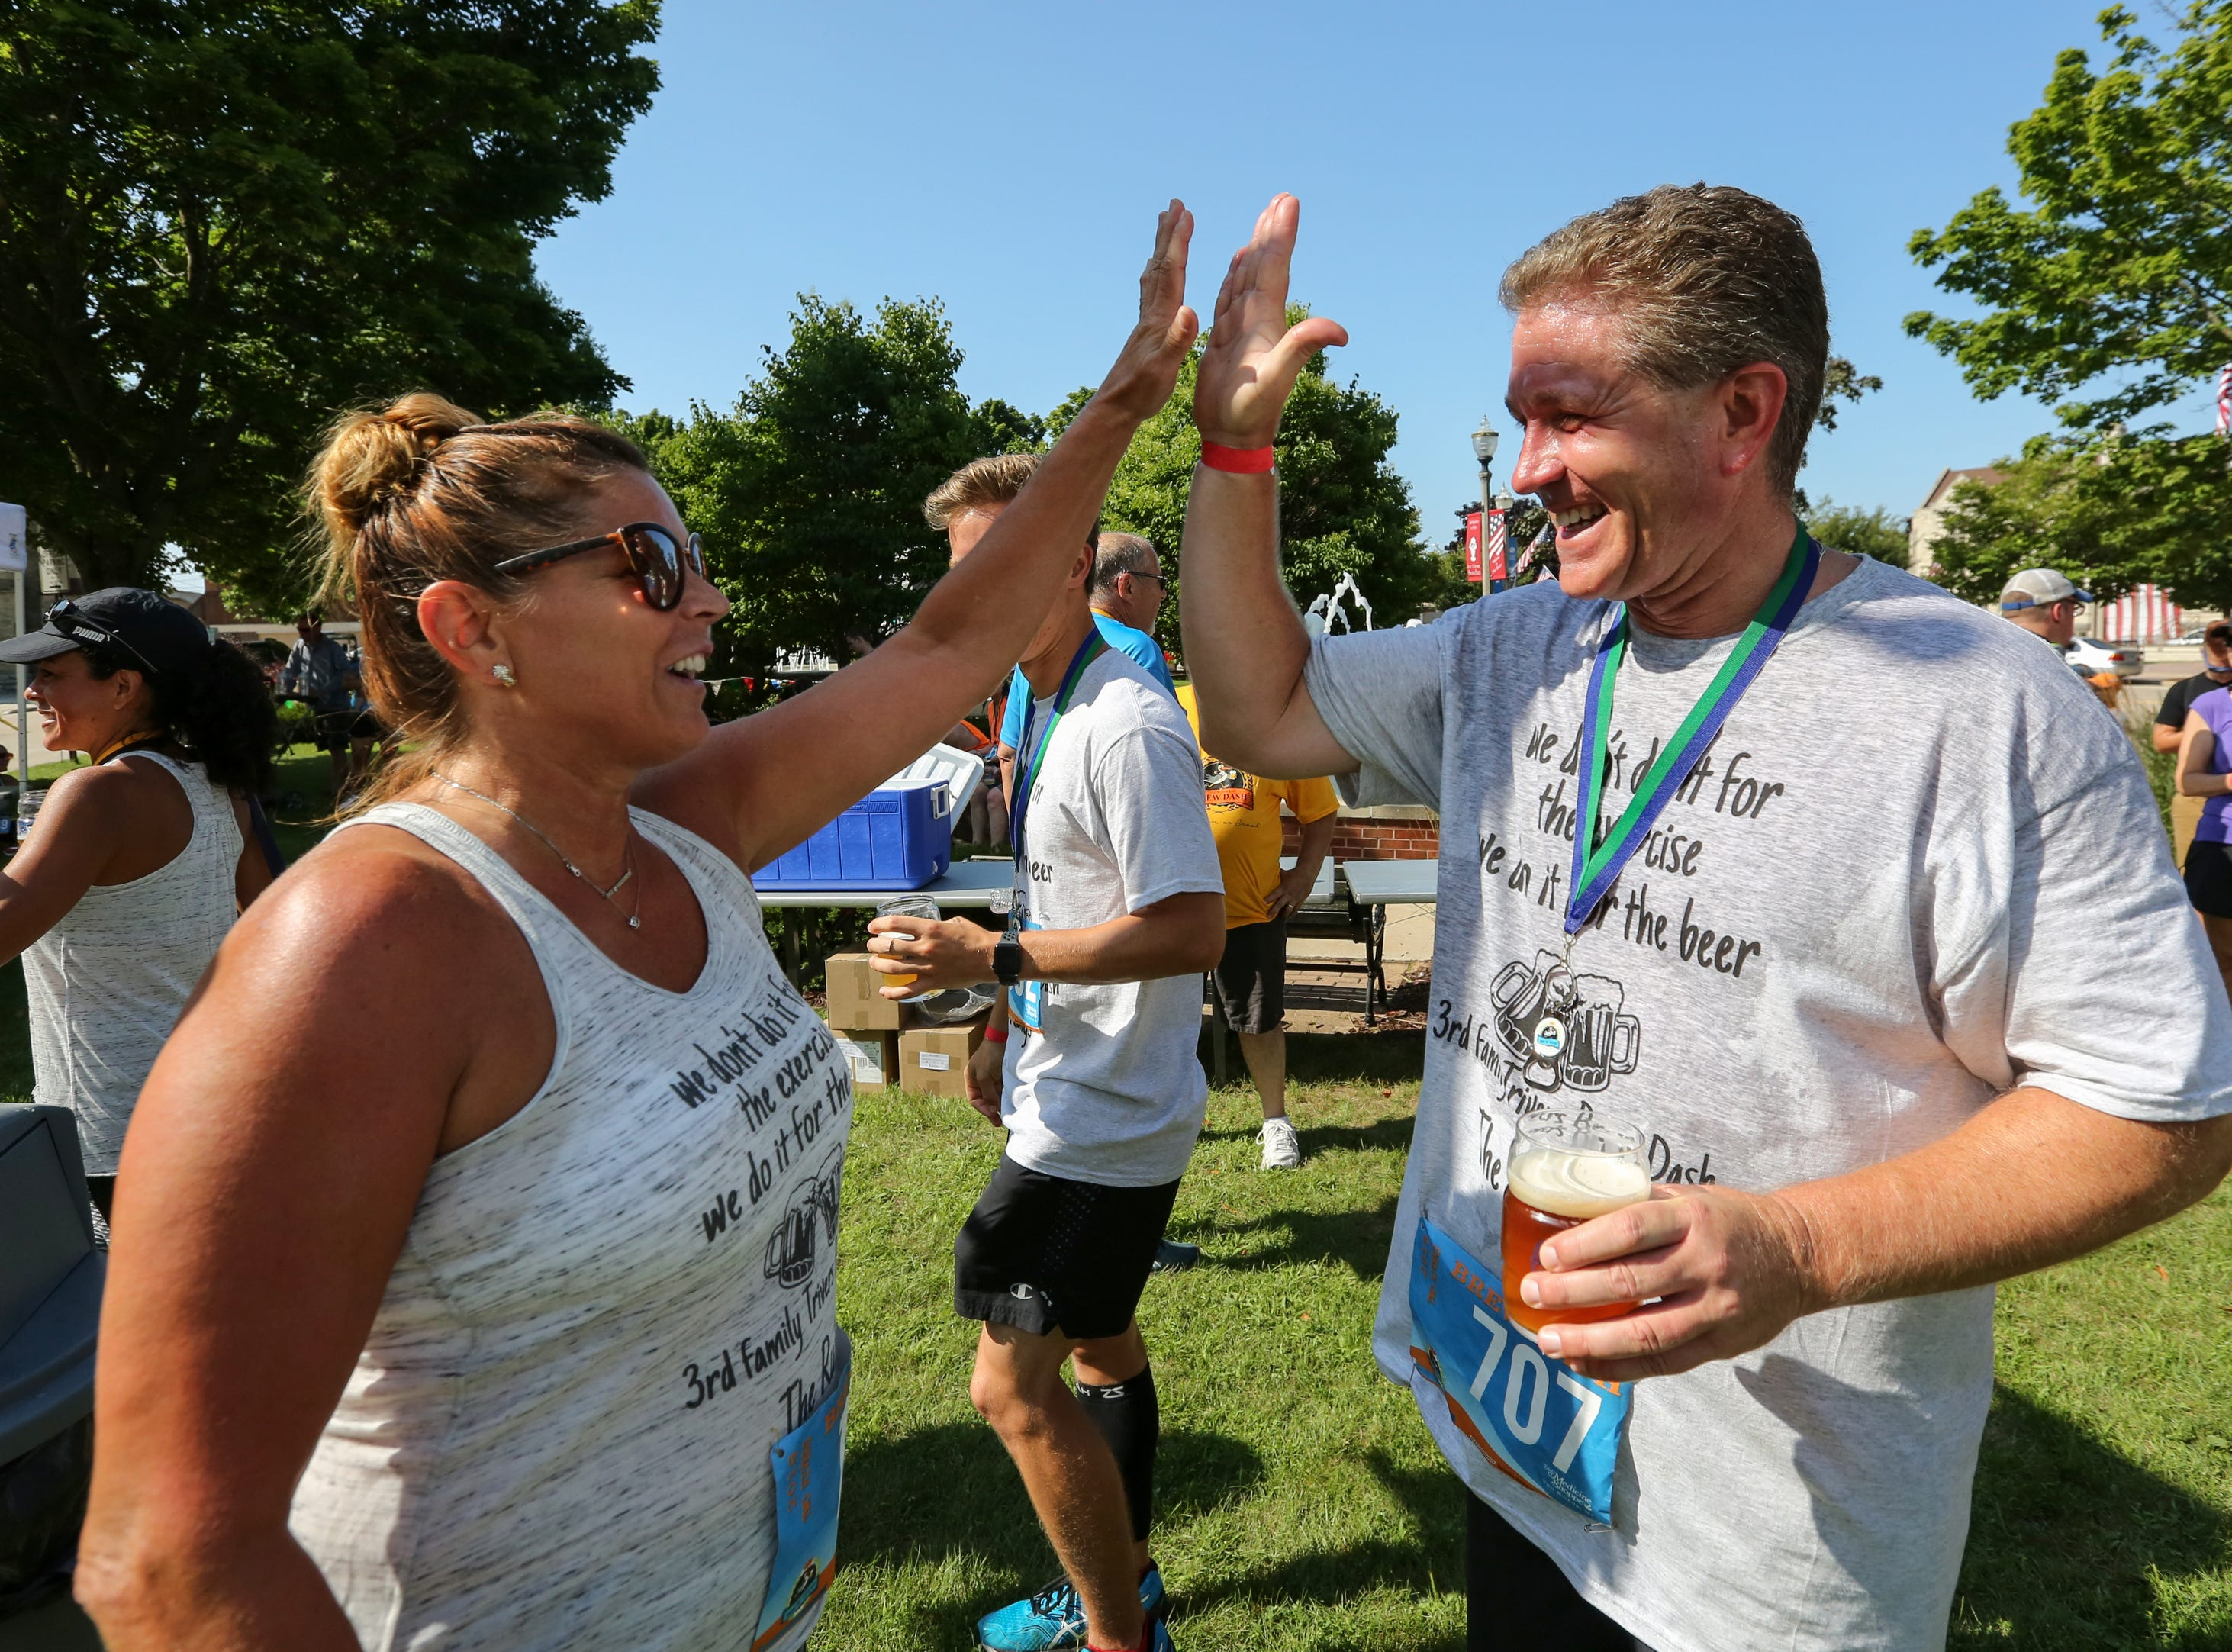 Tammy Marnocha high fives Jon Rudebeck after running the Brew Dash 5K Saturday, July 28, 2018, in Two Rivers, Wis. Josh Clark/USA TODAY NETWORK-Wisconsin